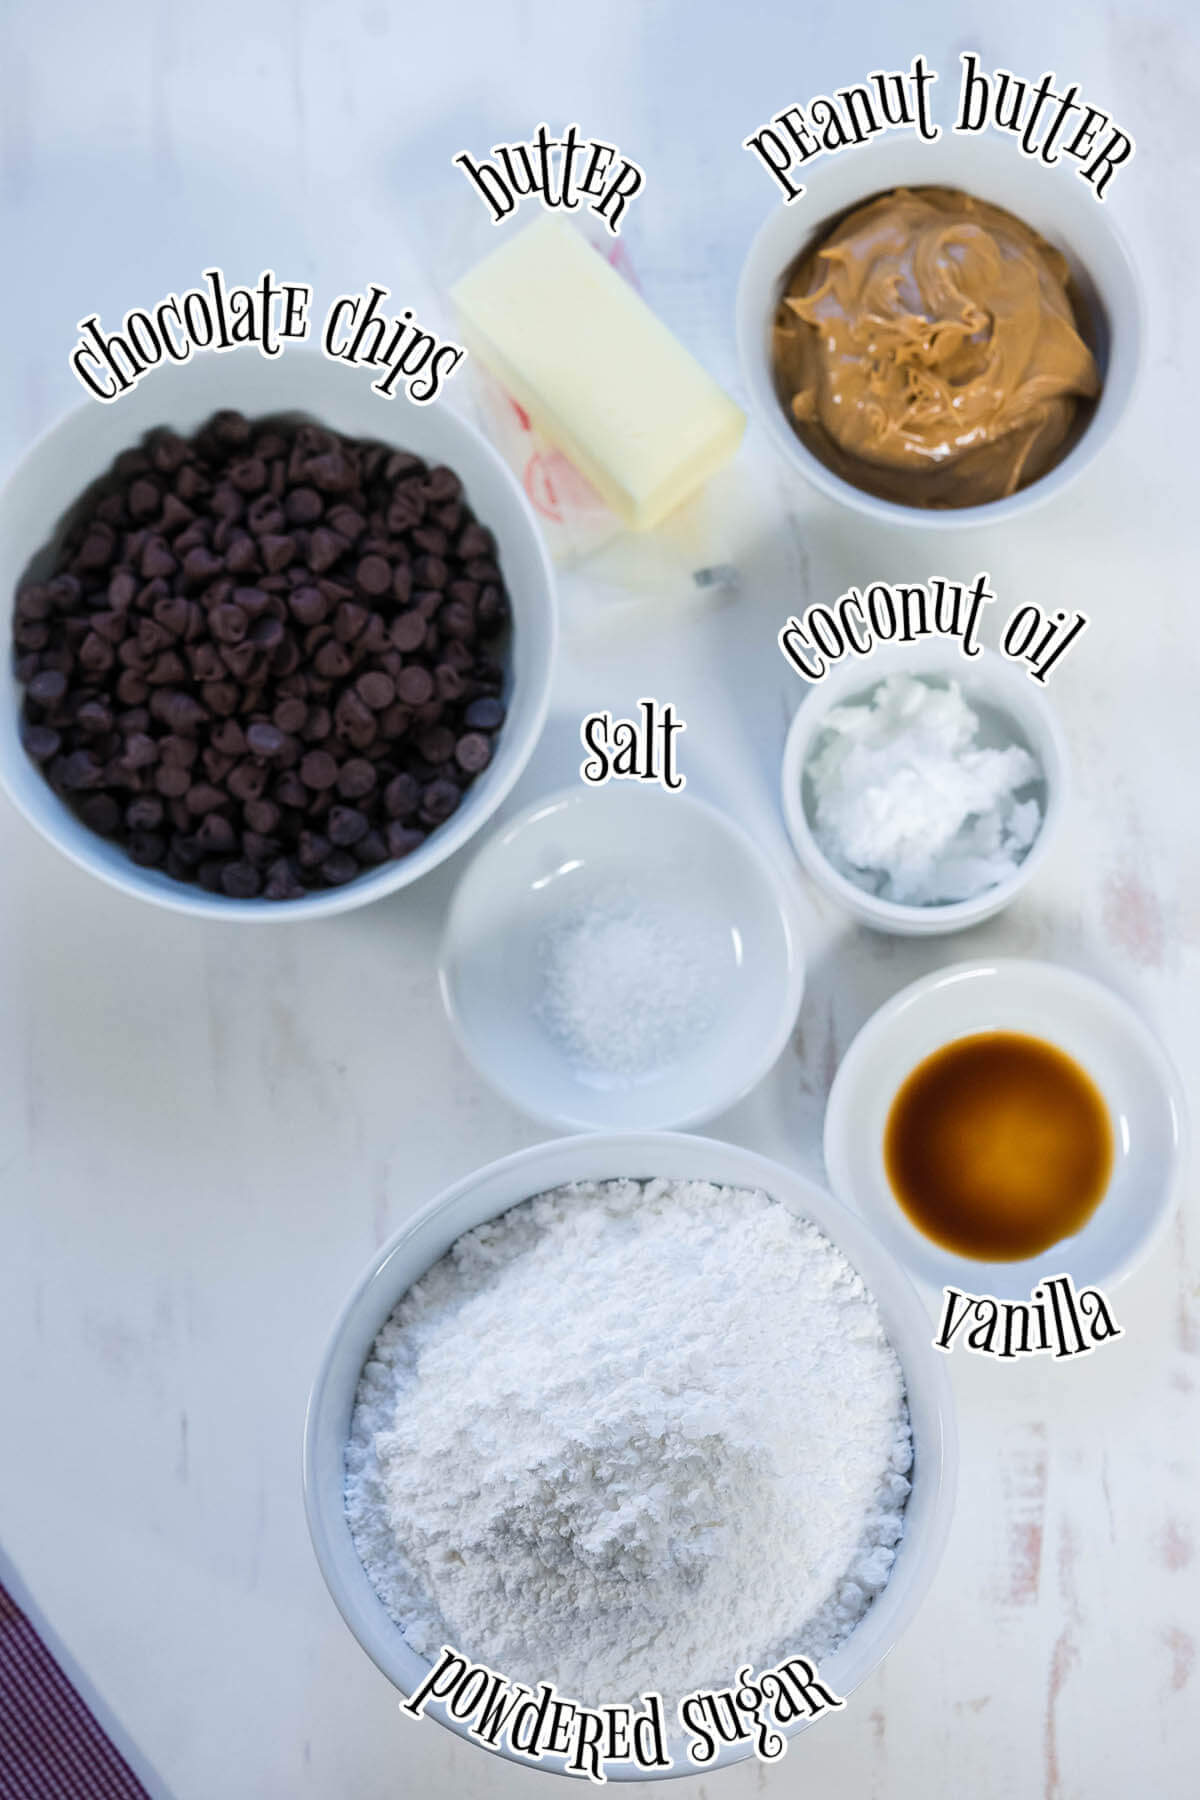 Photo showing ingredients for this recipe with print overlay.